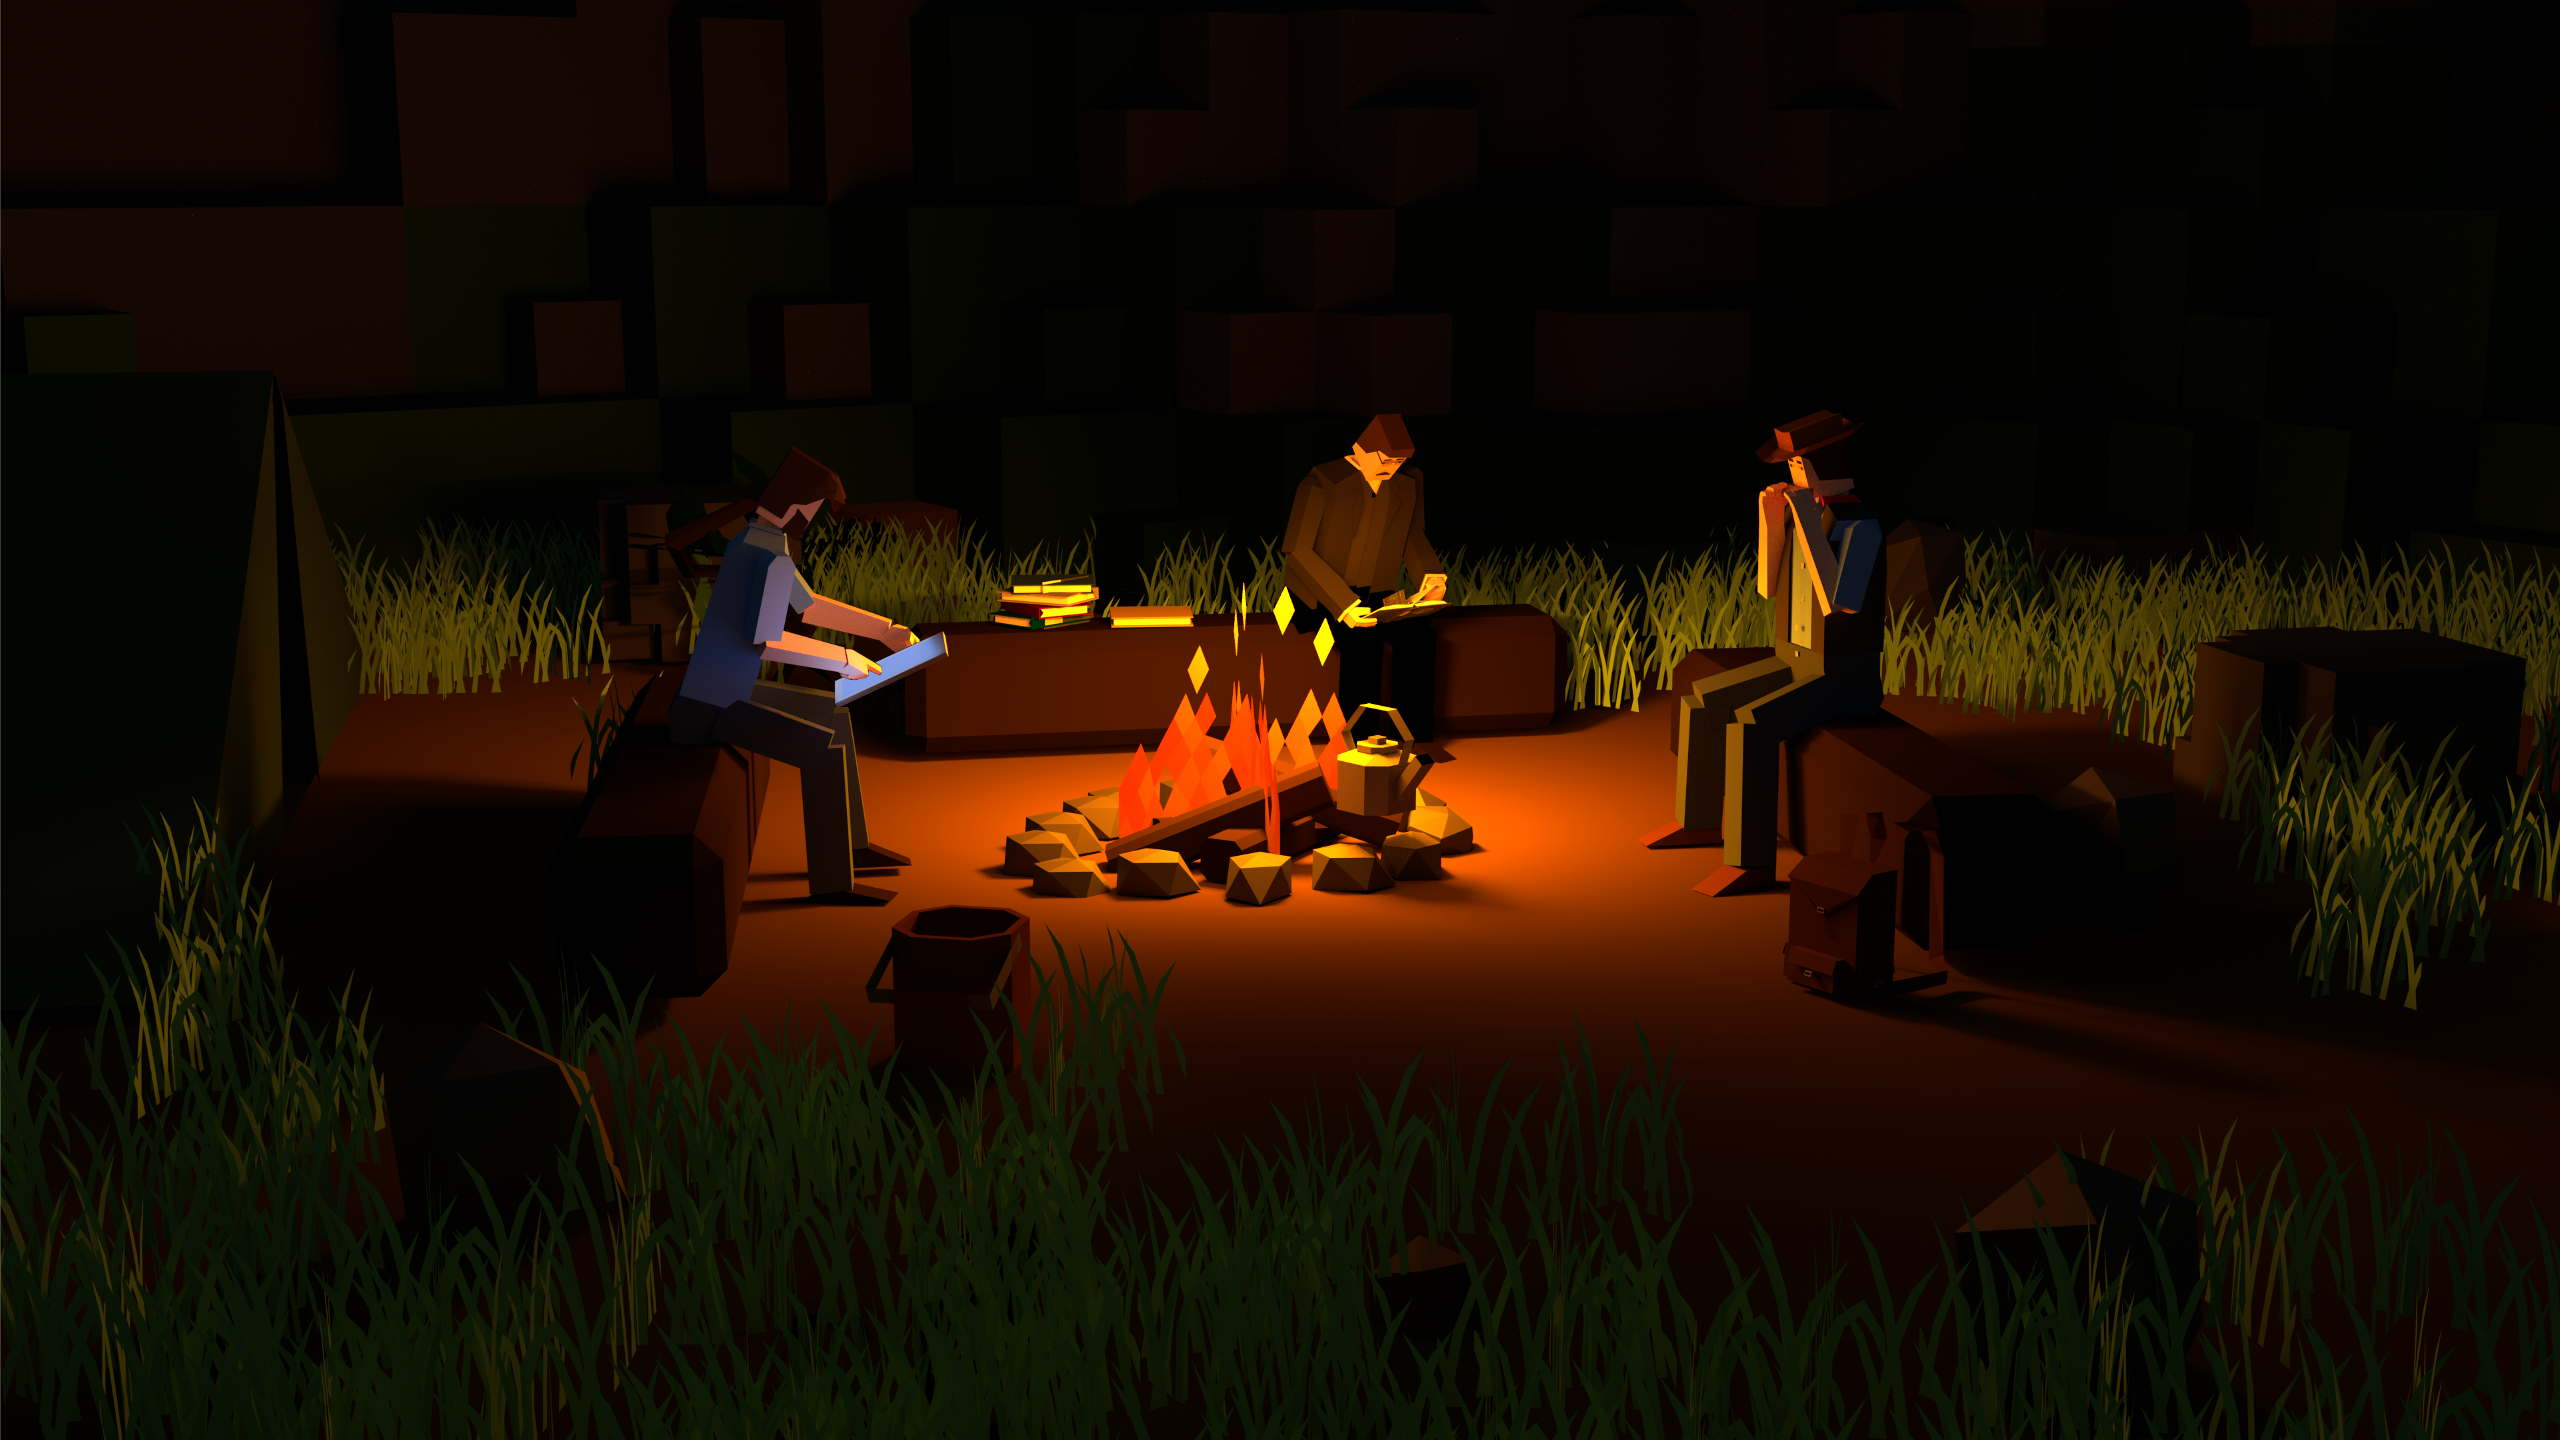 People sitting around calm campfire